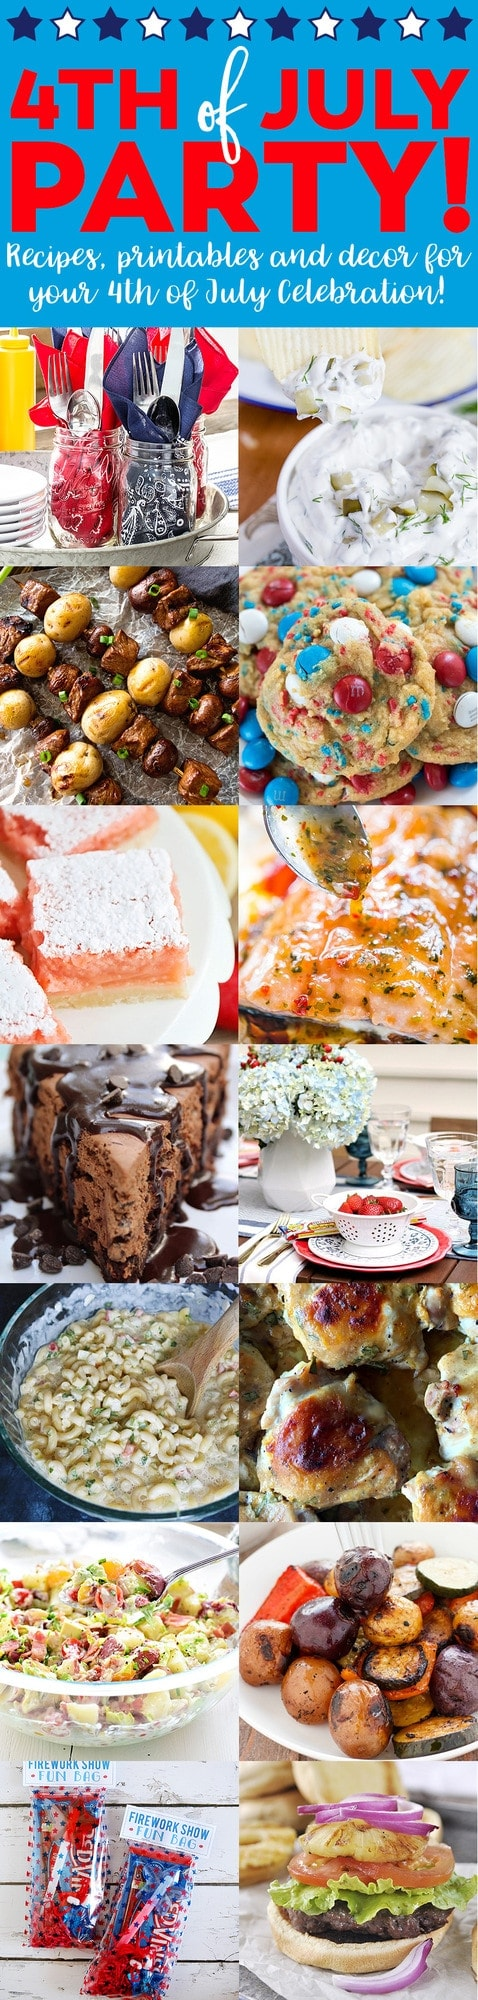 A collage of different food